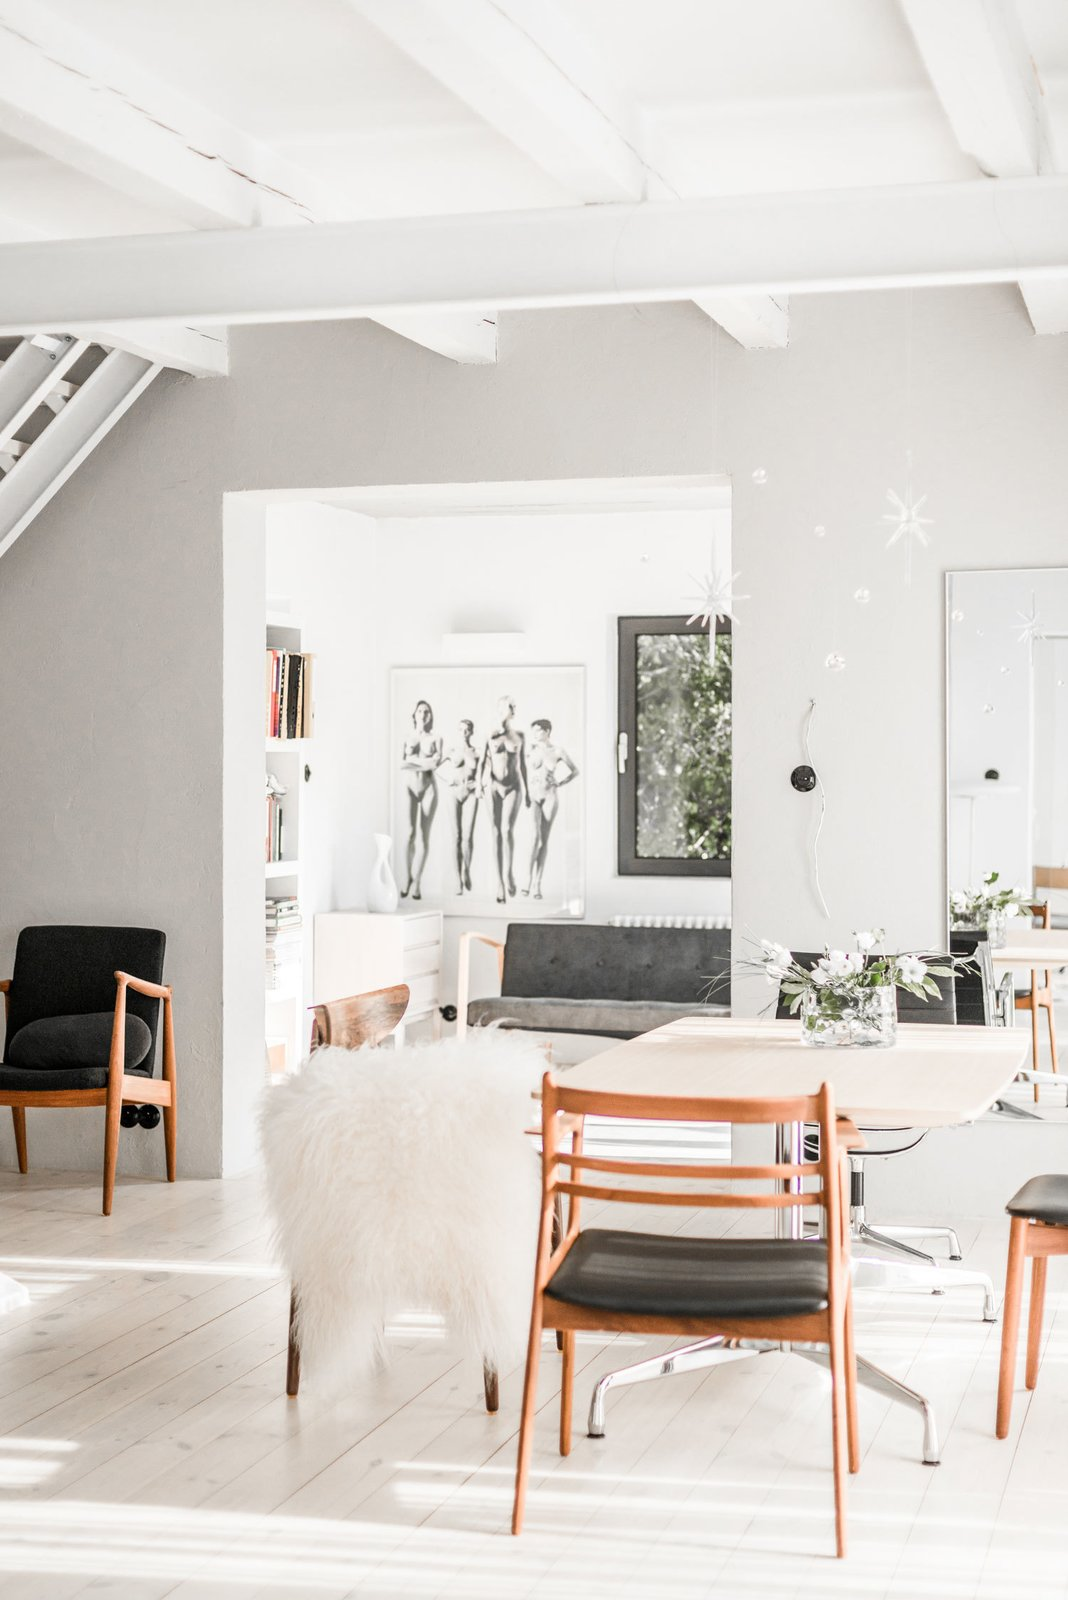 The dwelling showcases the designer's collection of Danish chairs and loungers from the 1940s, 50s, and 60s — including pieces designed by Kofod Larsen, J.L Moller, Harry Ostergaard, Bruno Mathsson, and Hans J. Wegner. Tagged: Dining Room, Table, Chair, and Light Hardwood Floor.  Photo 6 of 10 in A Run-Down Farmhouse Becomes a Sleek Modern Retreat